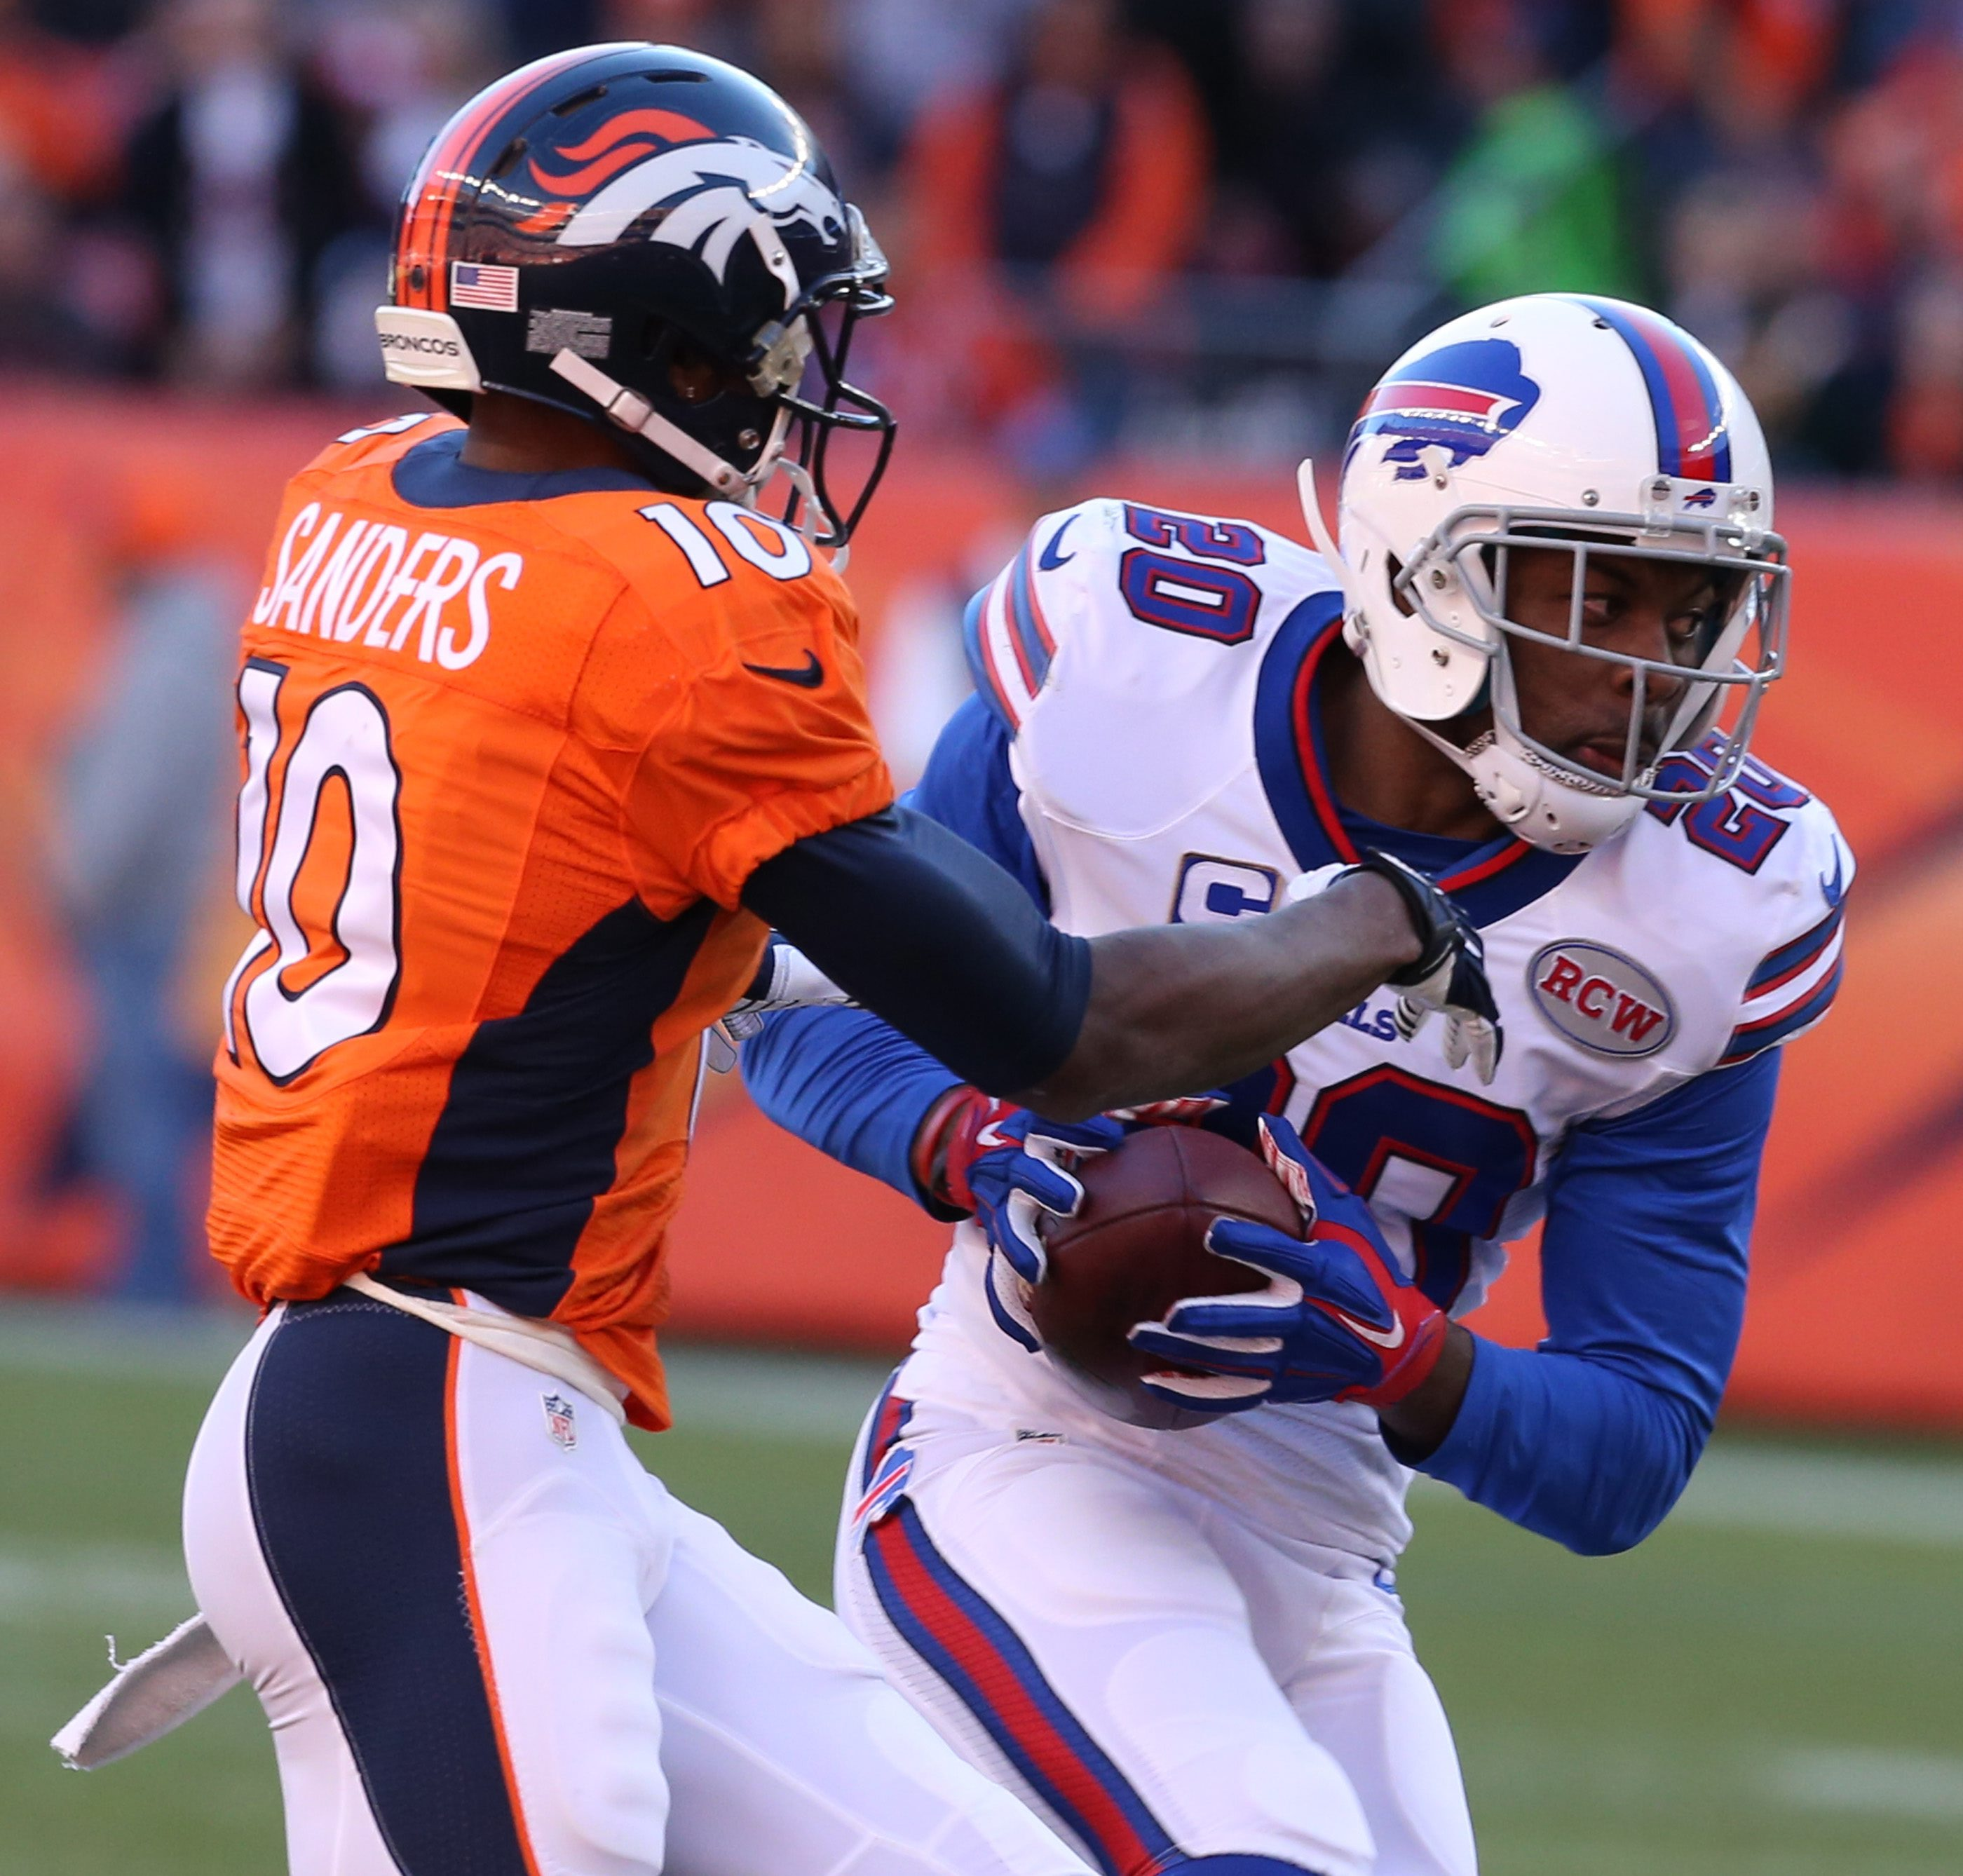 Buffalo's Corey Graham had a team-leading 15 passes defensed to go with two interceptions, including one against Denver.